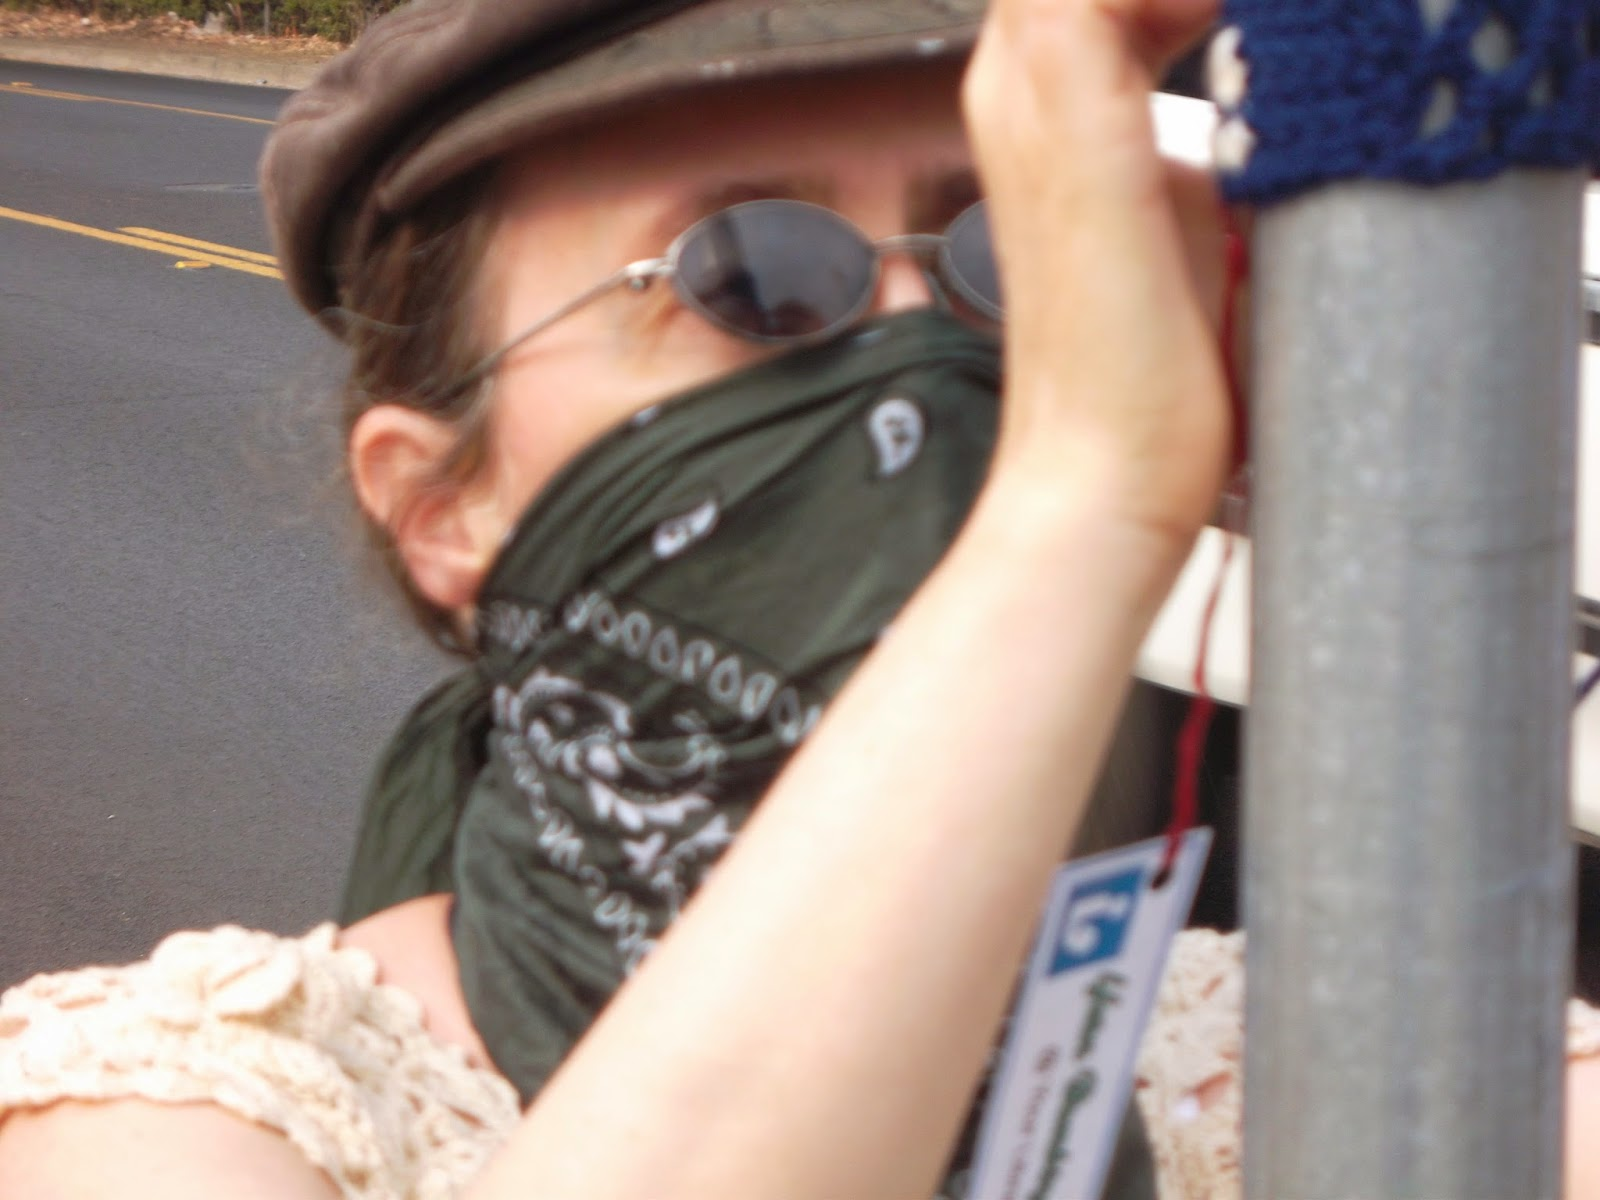 Cynthia M. Parkhill with a bandana tied over nose and mouth, attaches yarnbombing tag to bus sign pole.